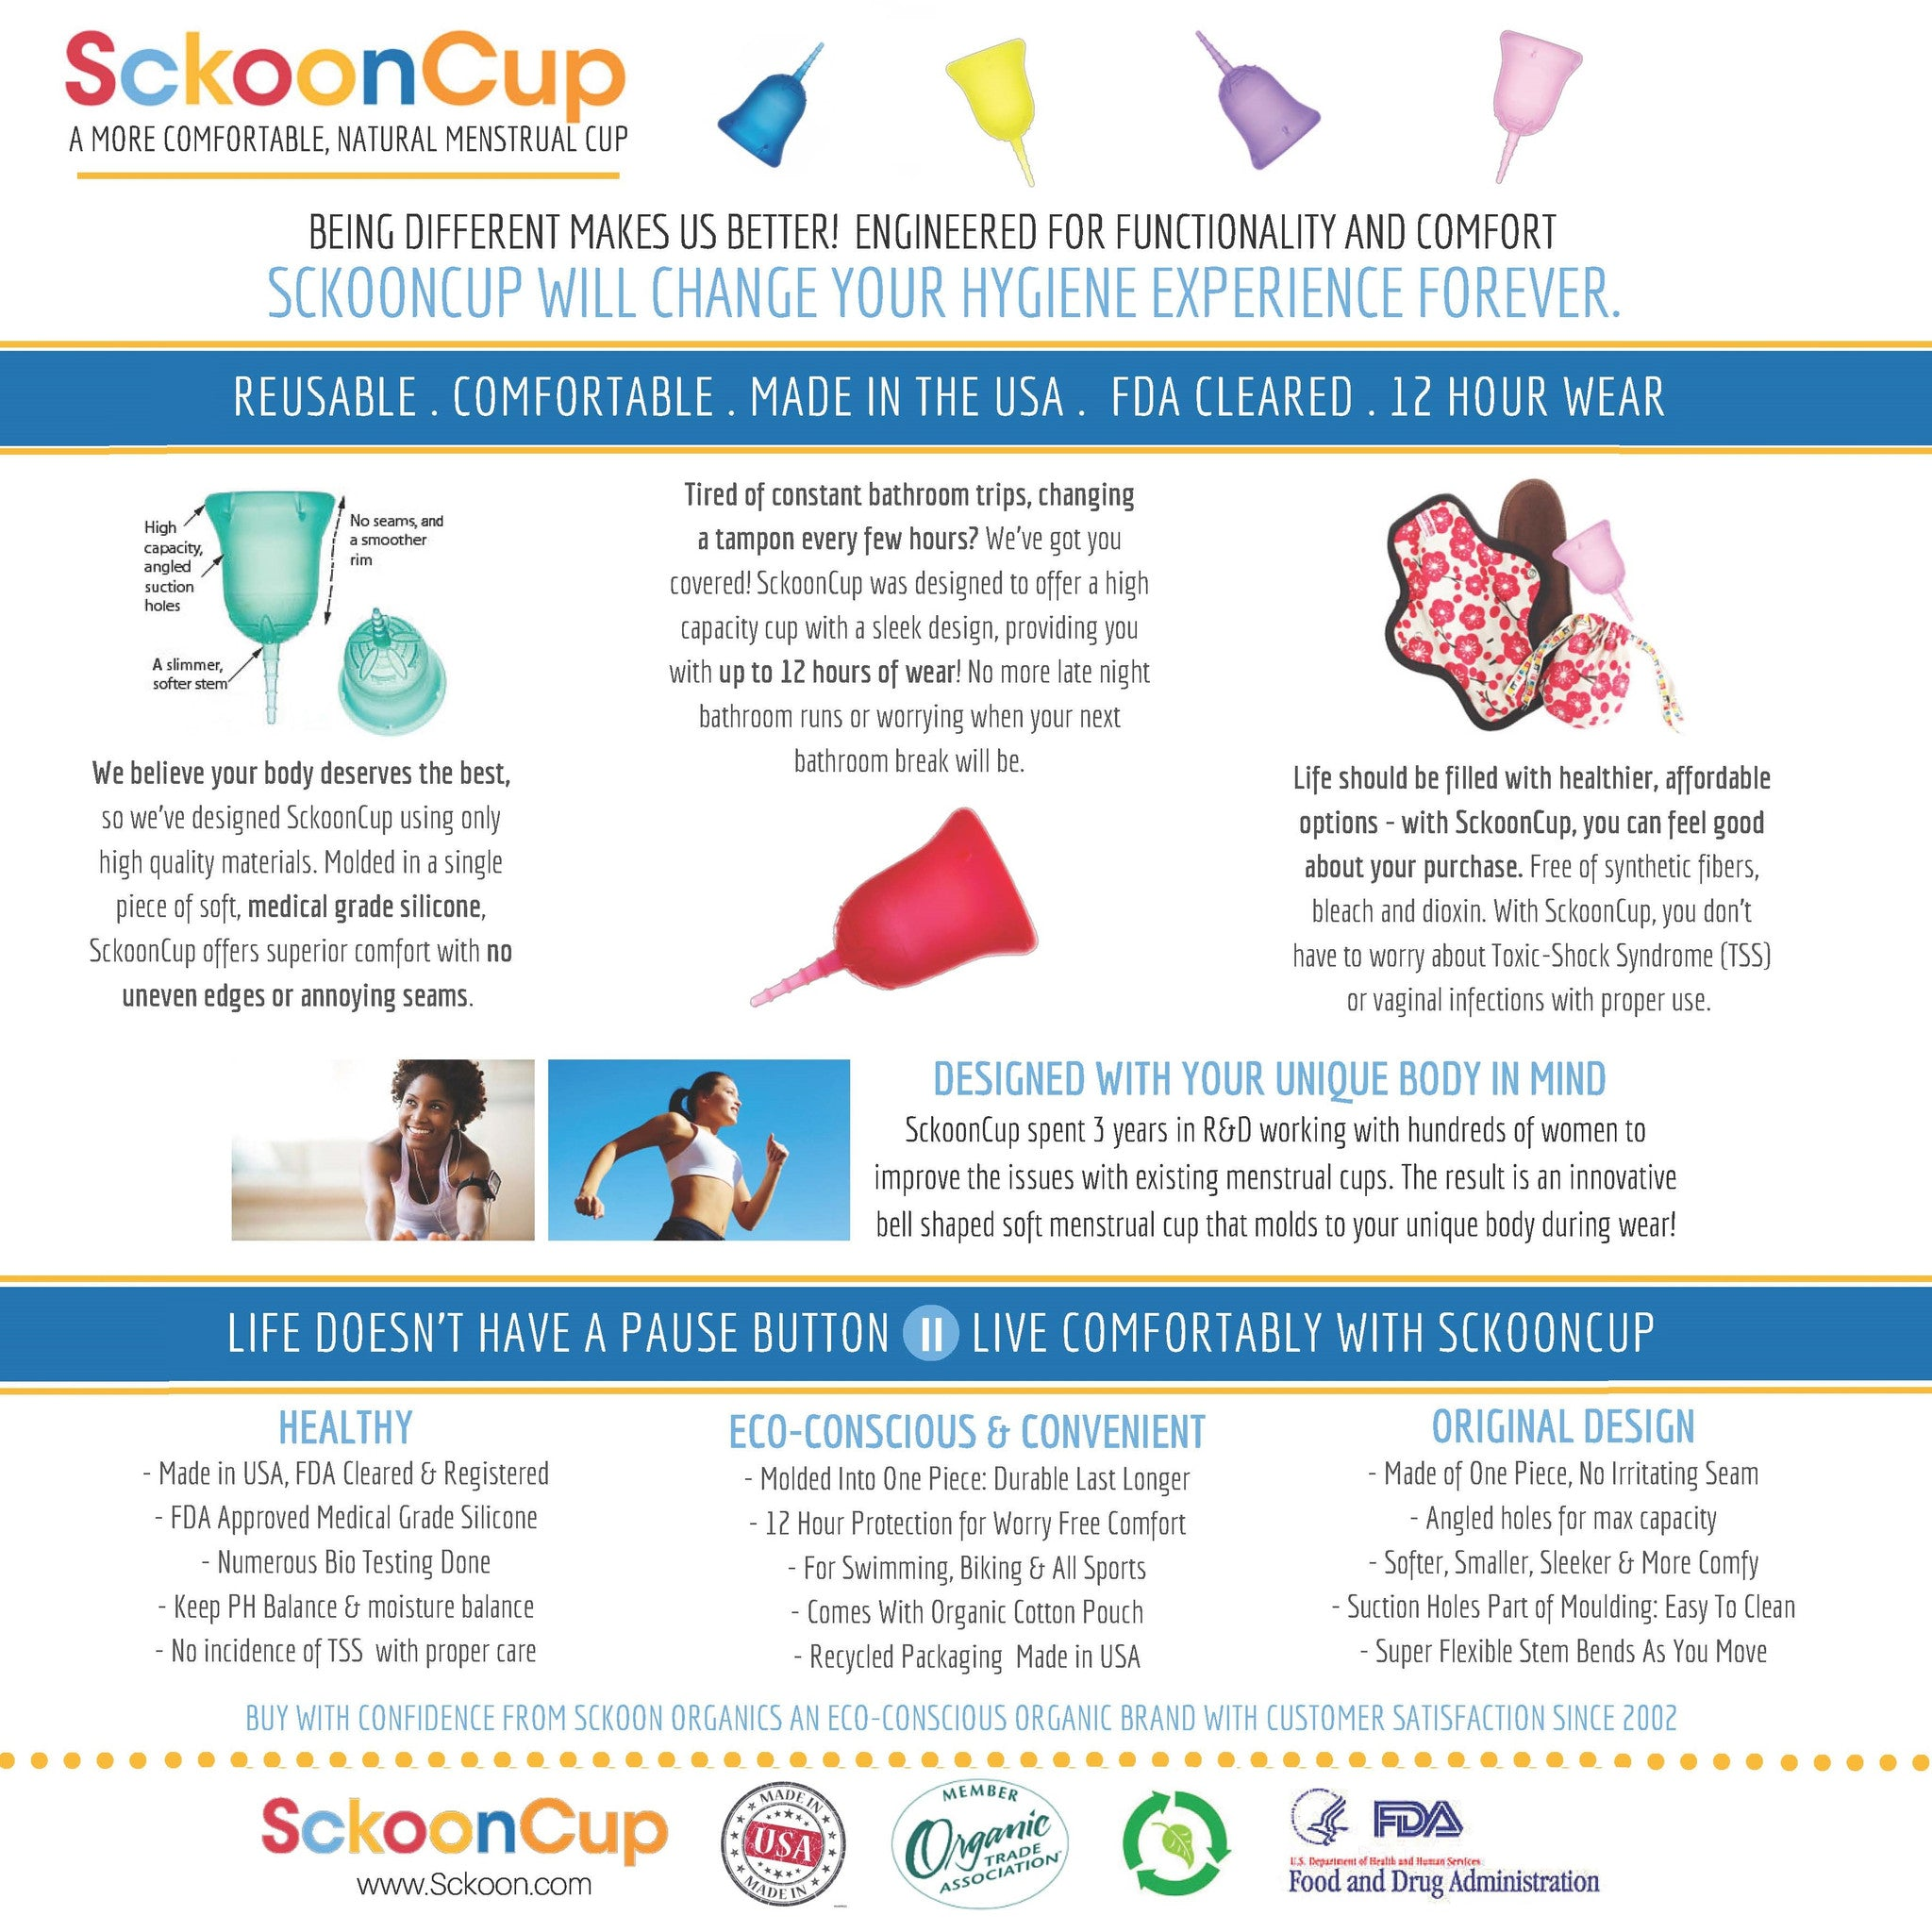 ... SckoonCup Made in USA - FDA Registered - Plus Organic Cotton Pouch-  Sckoon Menstrual Cup ...